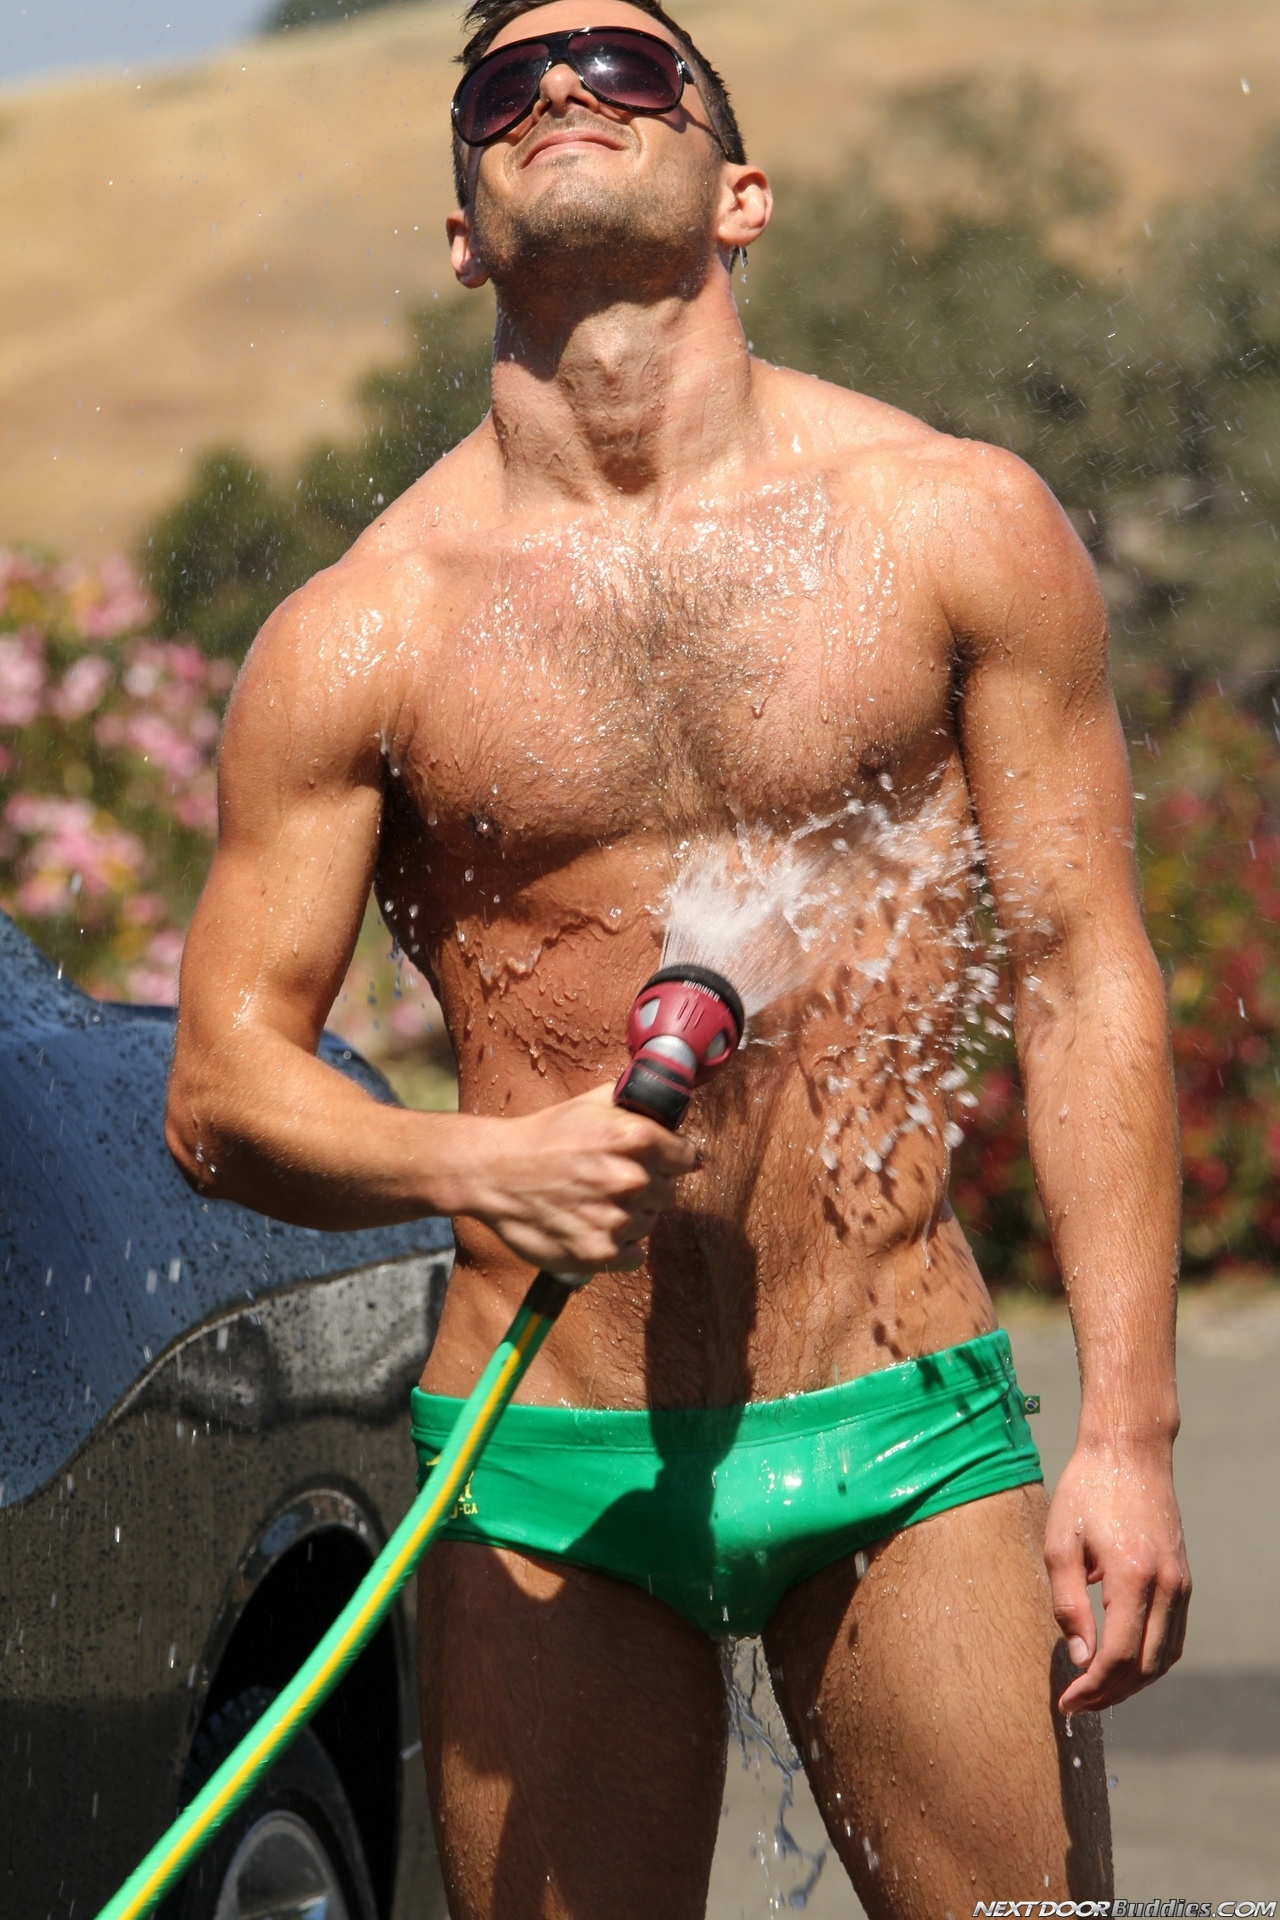 Marcus-Mojo-Brody-Wilder-Johnny-Torque-Rod-Daily-Donny-Wright-washing-a-car-in-Suds-Studs-Next-Door-Studios-72